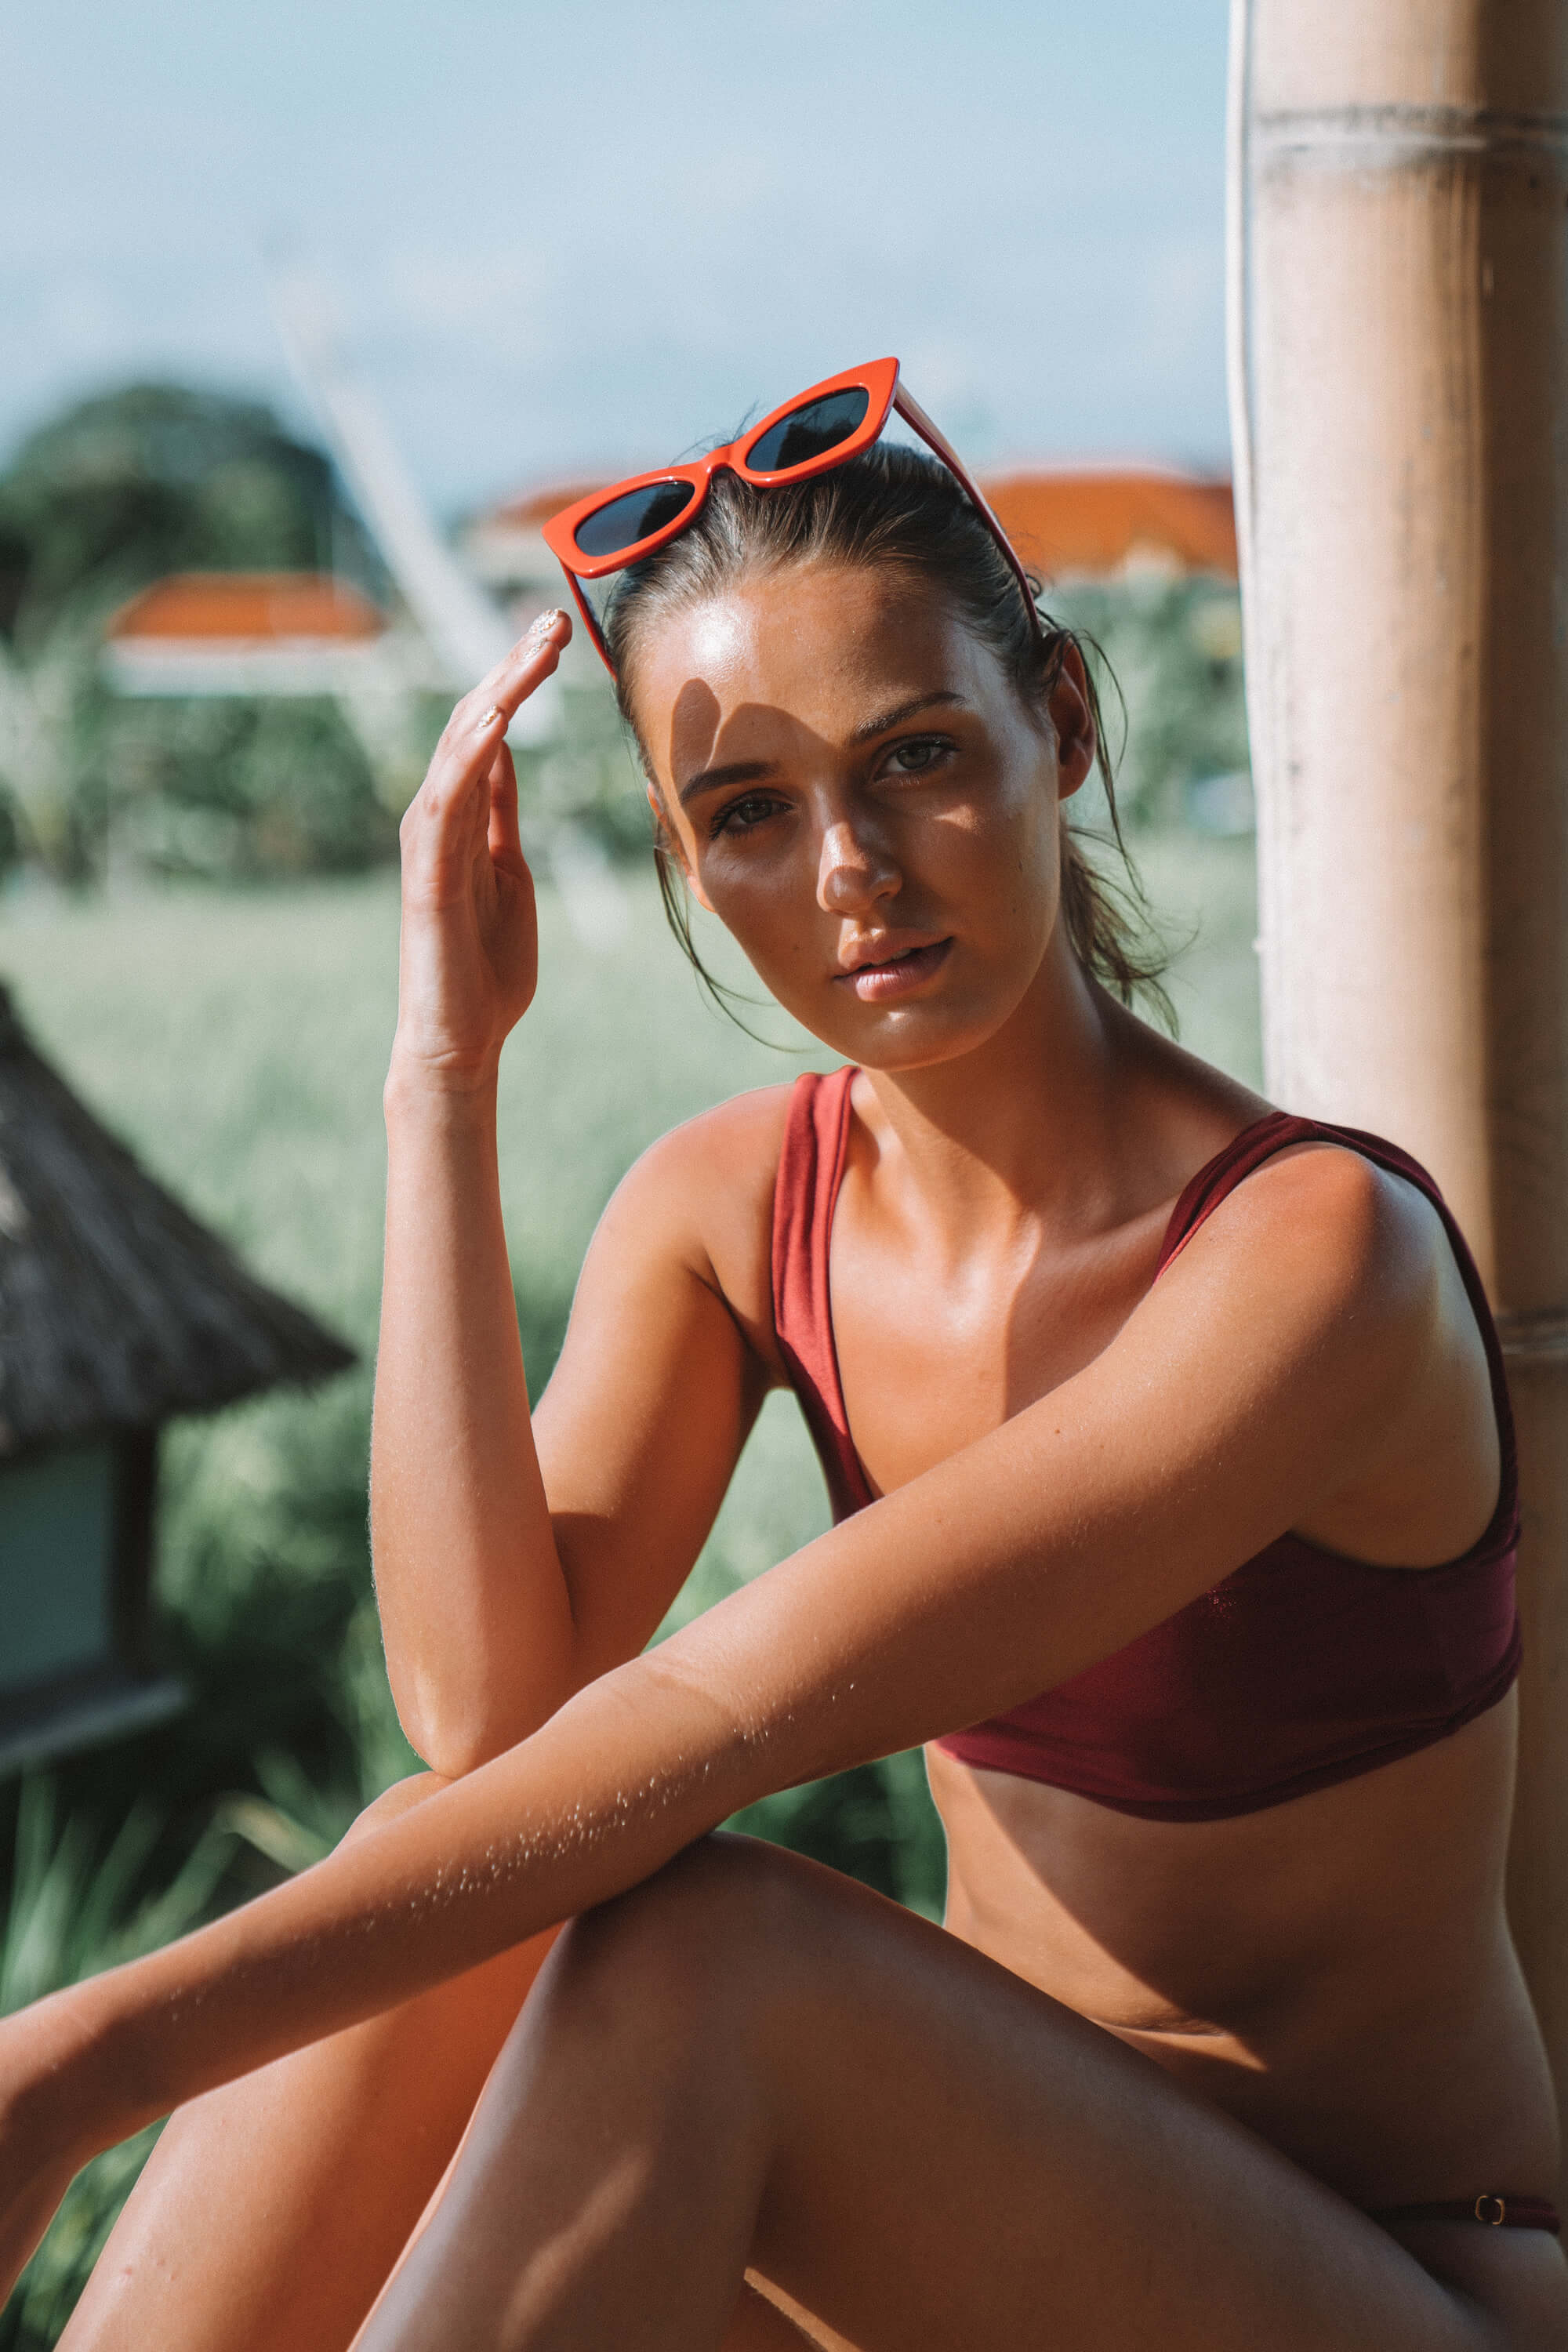 Soda Shades of Summer Australias best sunglasses eyewear online brand – Bali Model shoot_-24